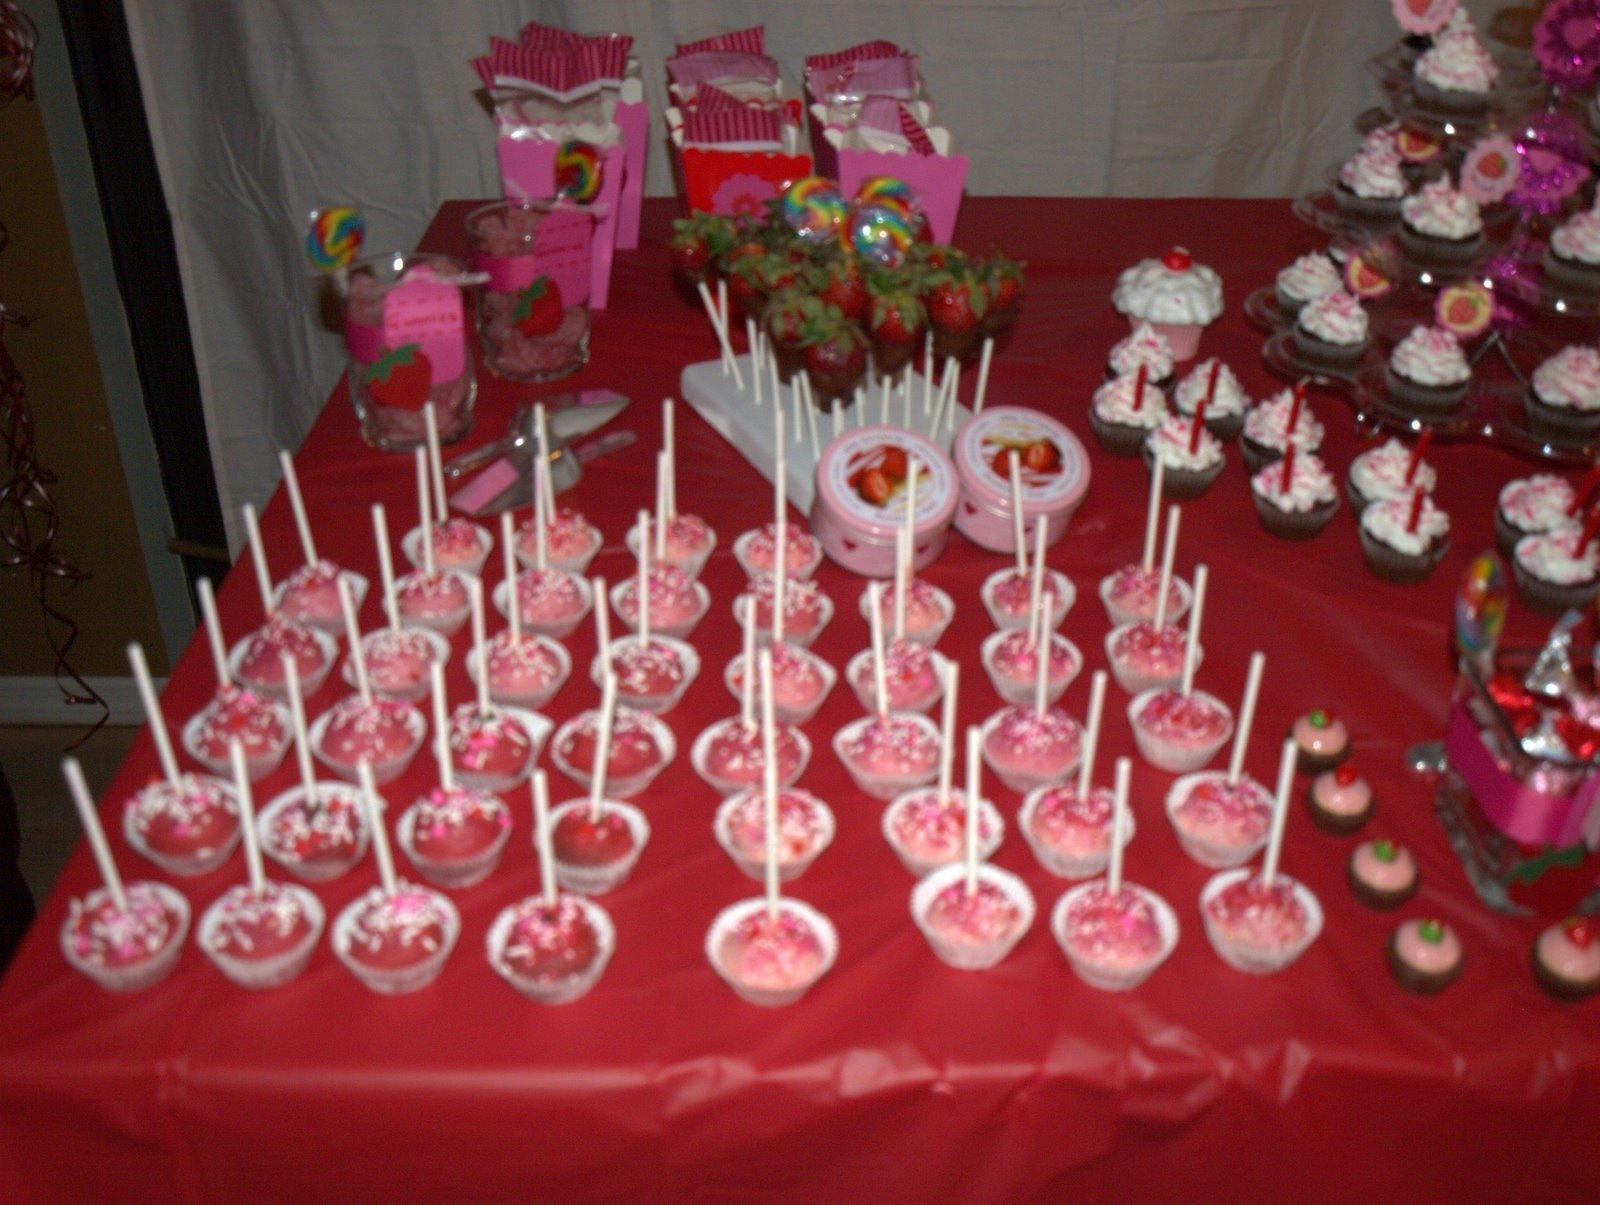 10 Best 18Th Birthday Party Ideas For A Girl 18th birthday party ideas for girls escapetheillusioncom room ideas 2020